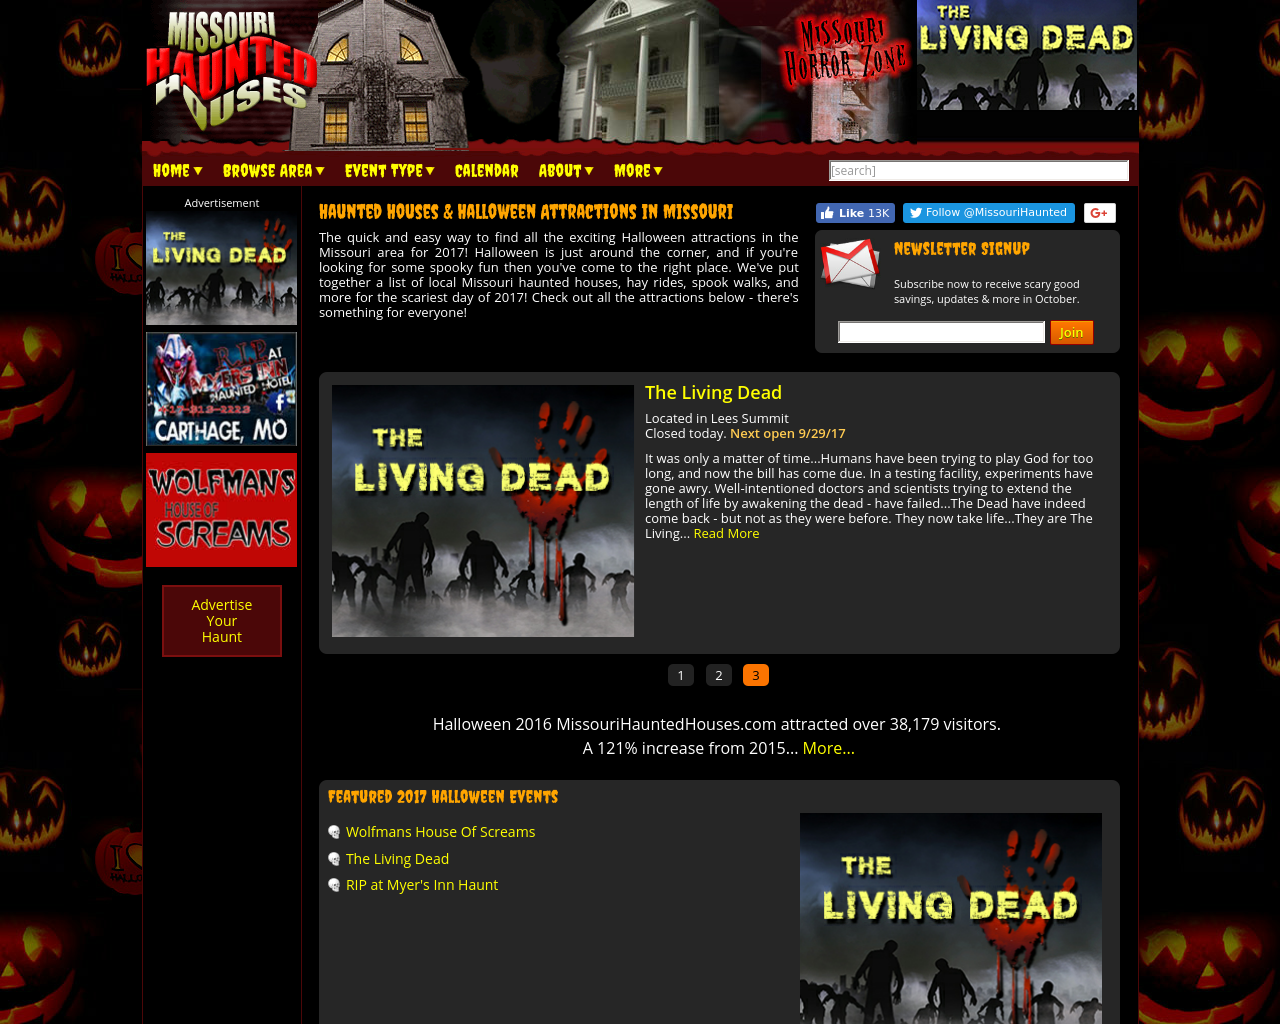 Missouri-Haunted-Houses-Advertising-Reviews-Pricing